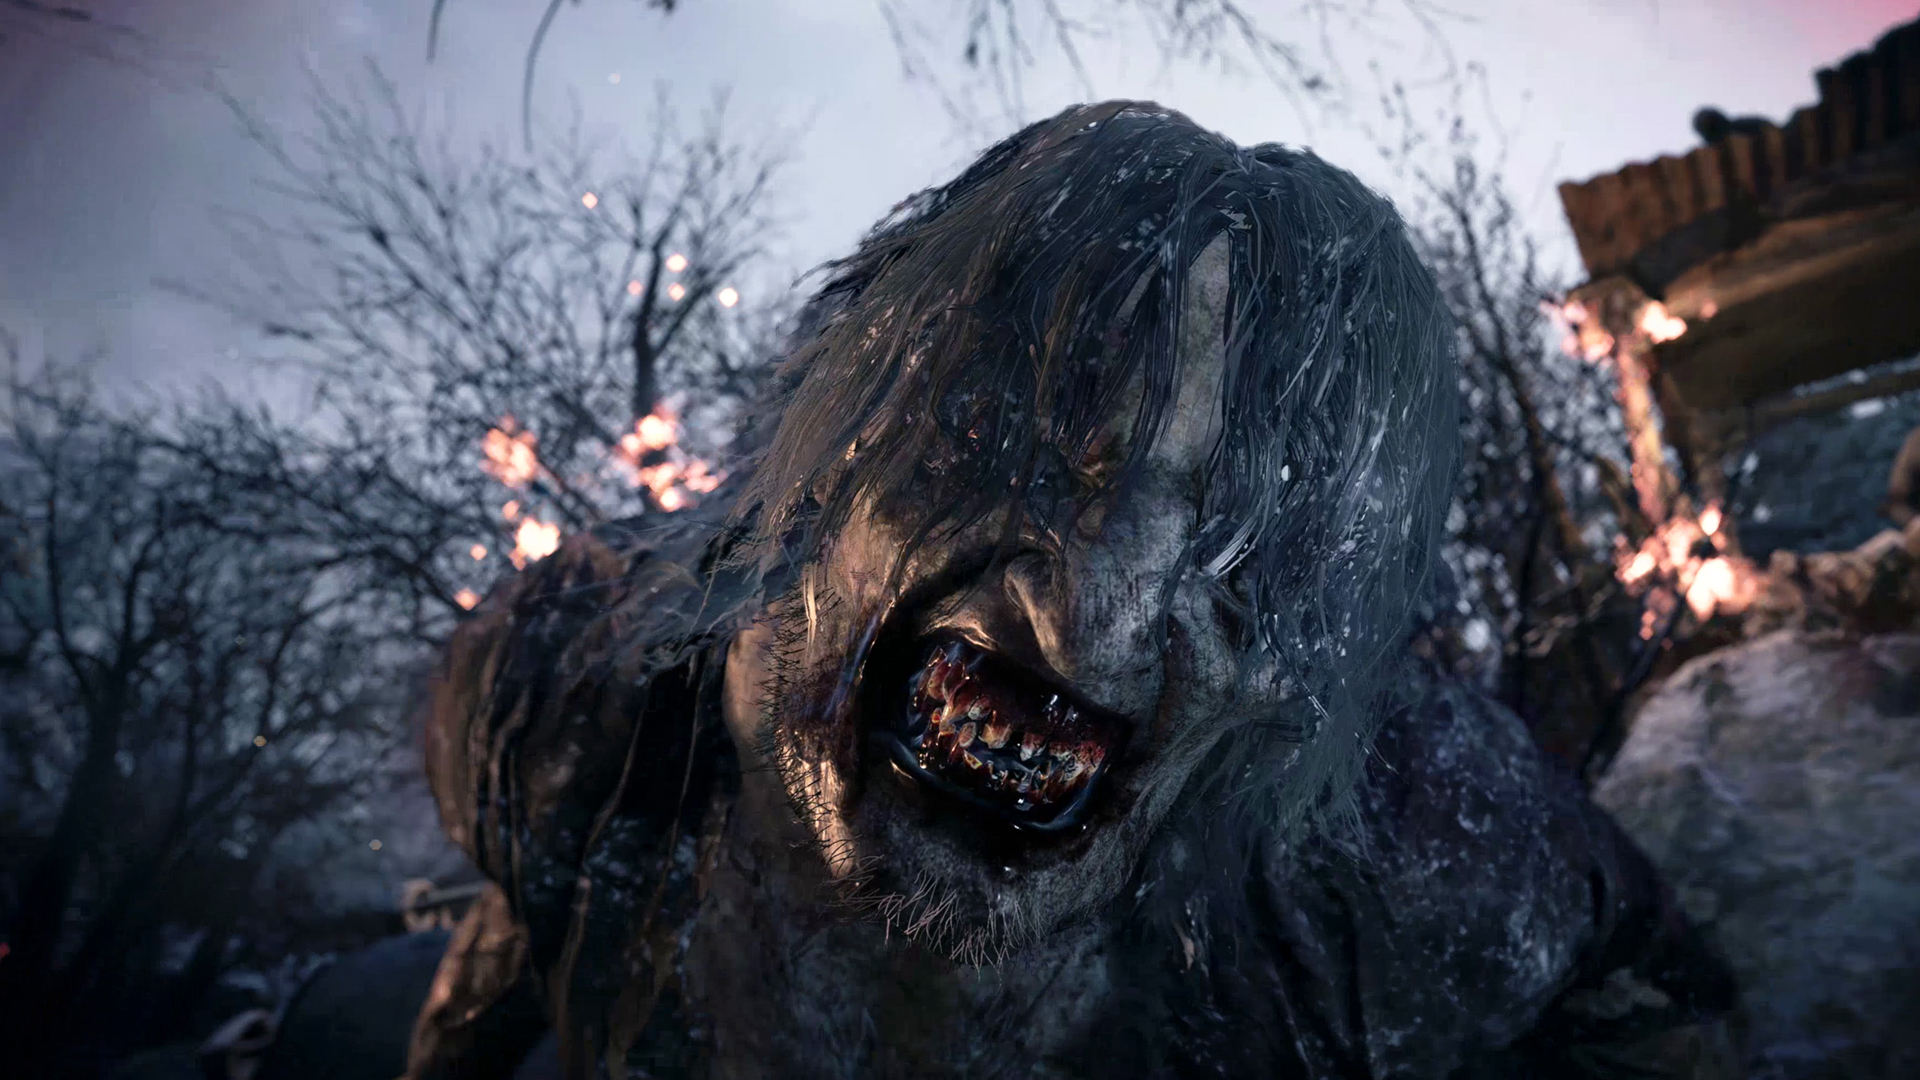 A lycan monster up close